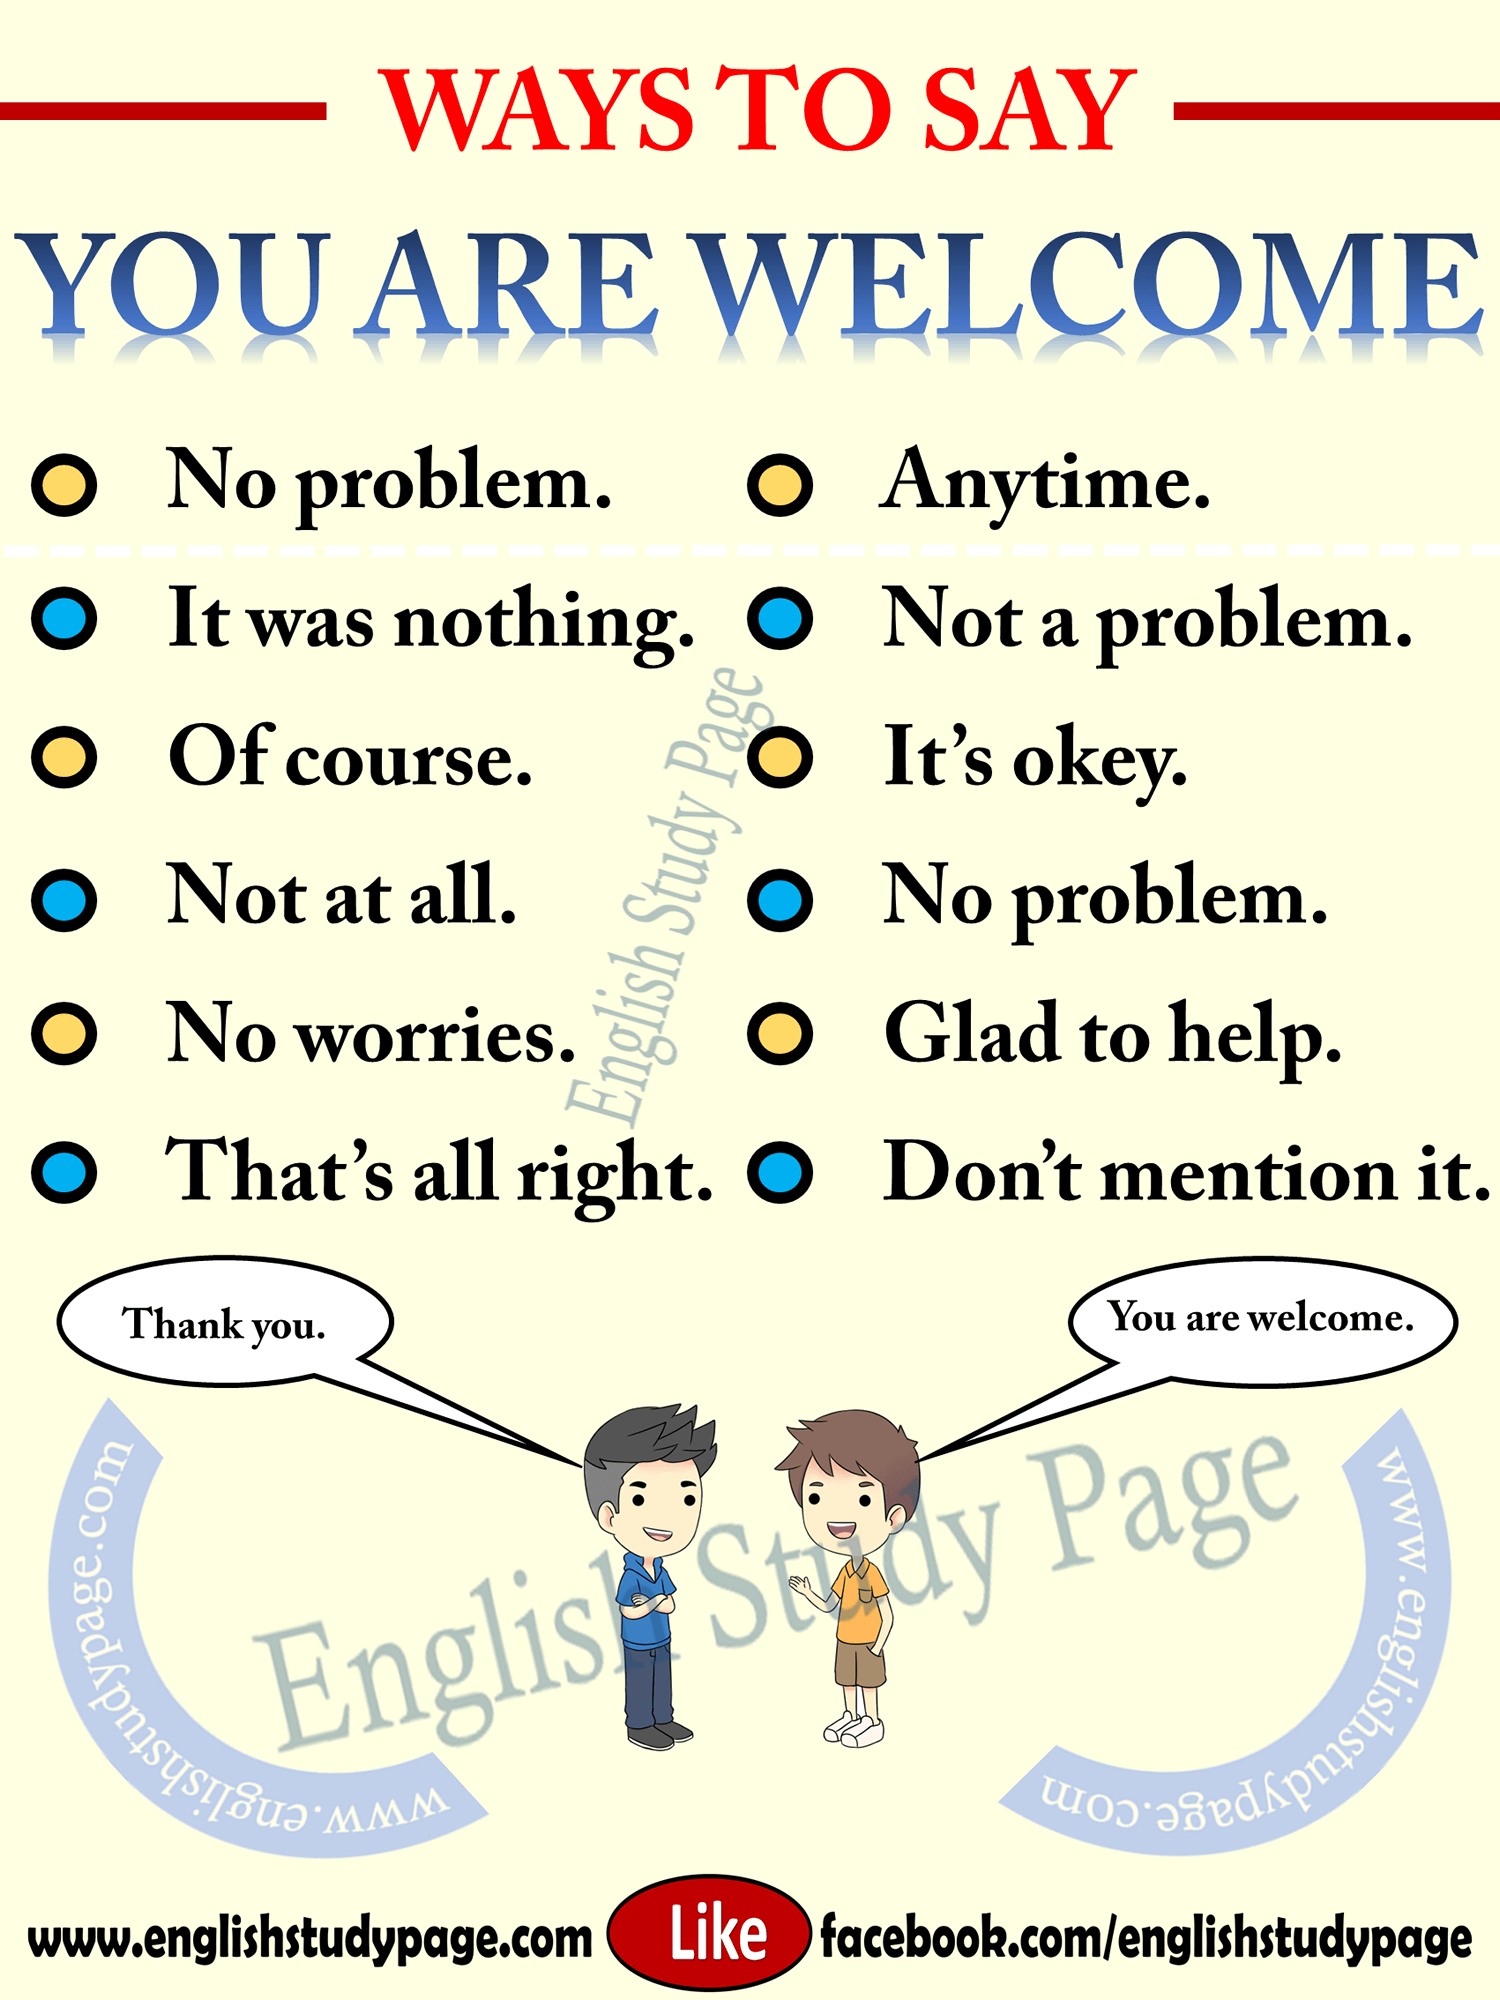 Other Ways To Say You Are Welcome English Study Page